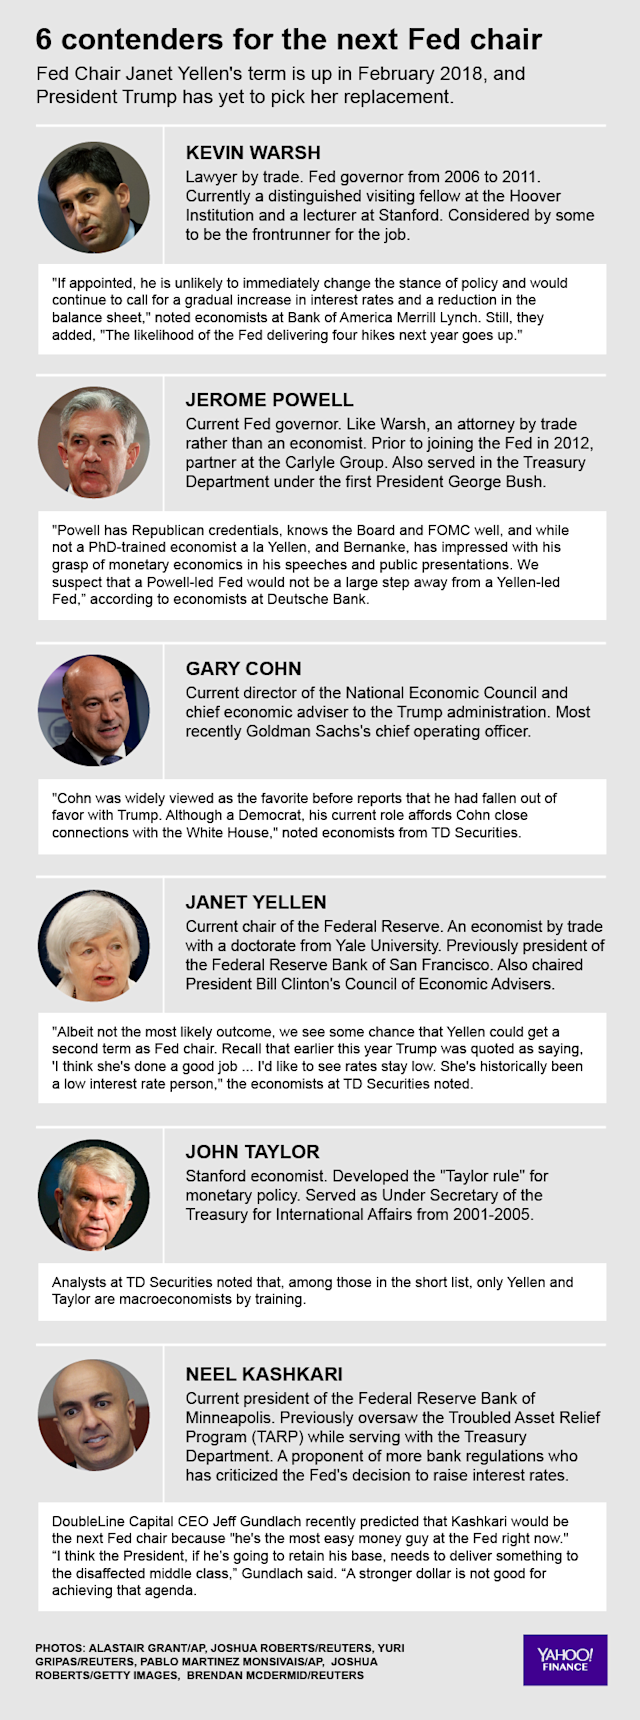 Possible contenders for Fed Chair.